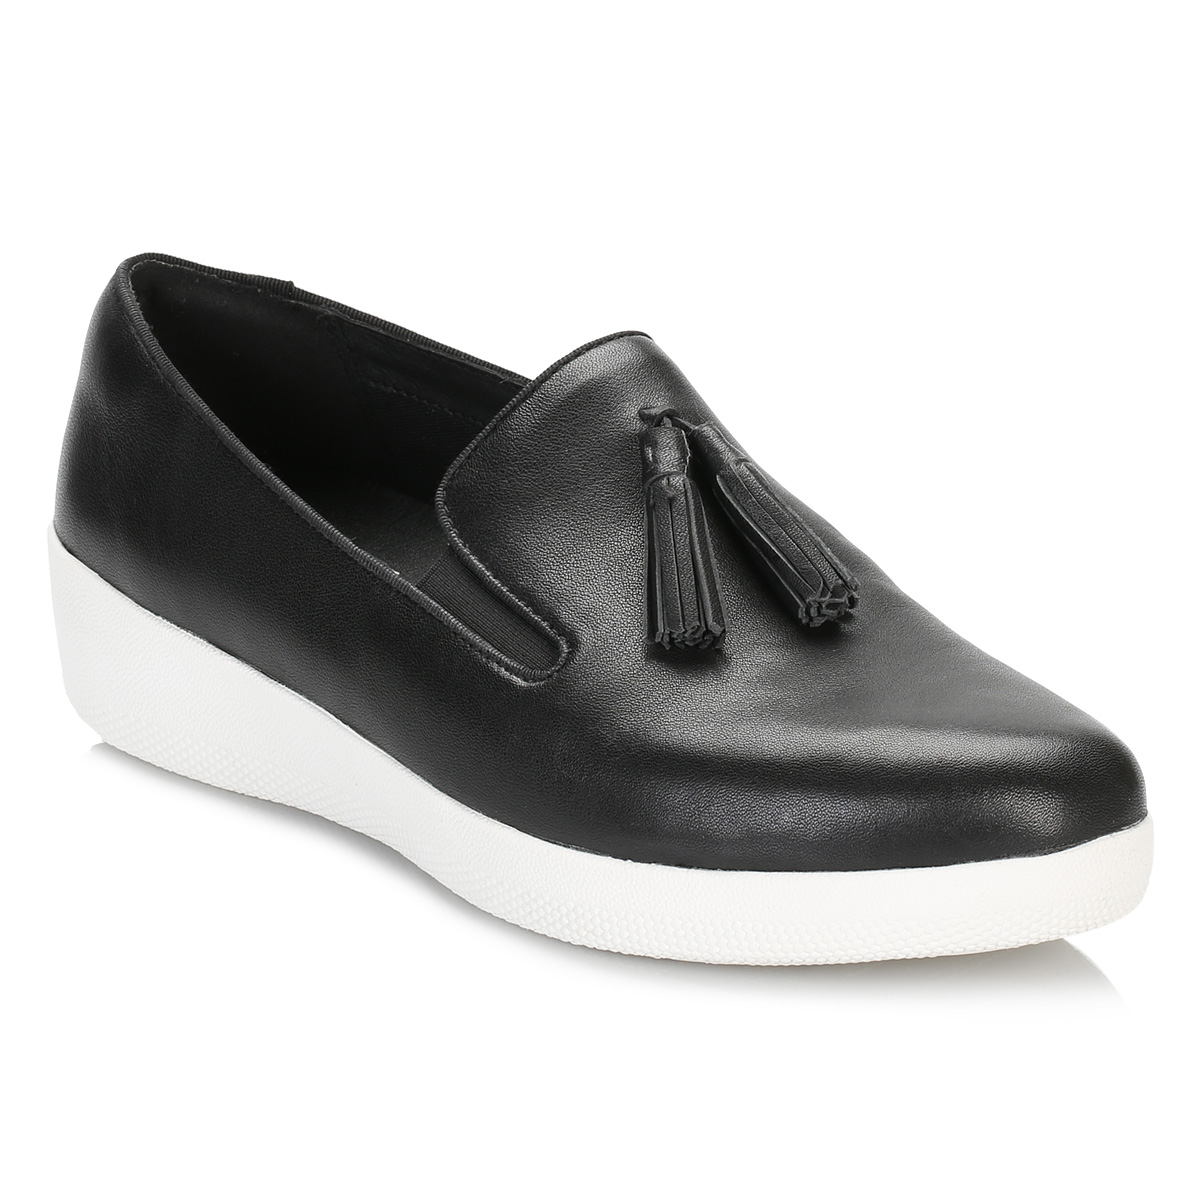 986b3b9e0 Details about FitFlop Womens Black Tassel Superskate Leather Loafers Flats  Casual Shoes